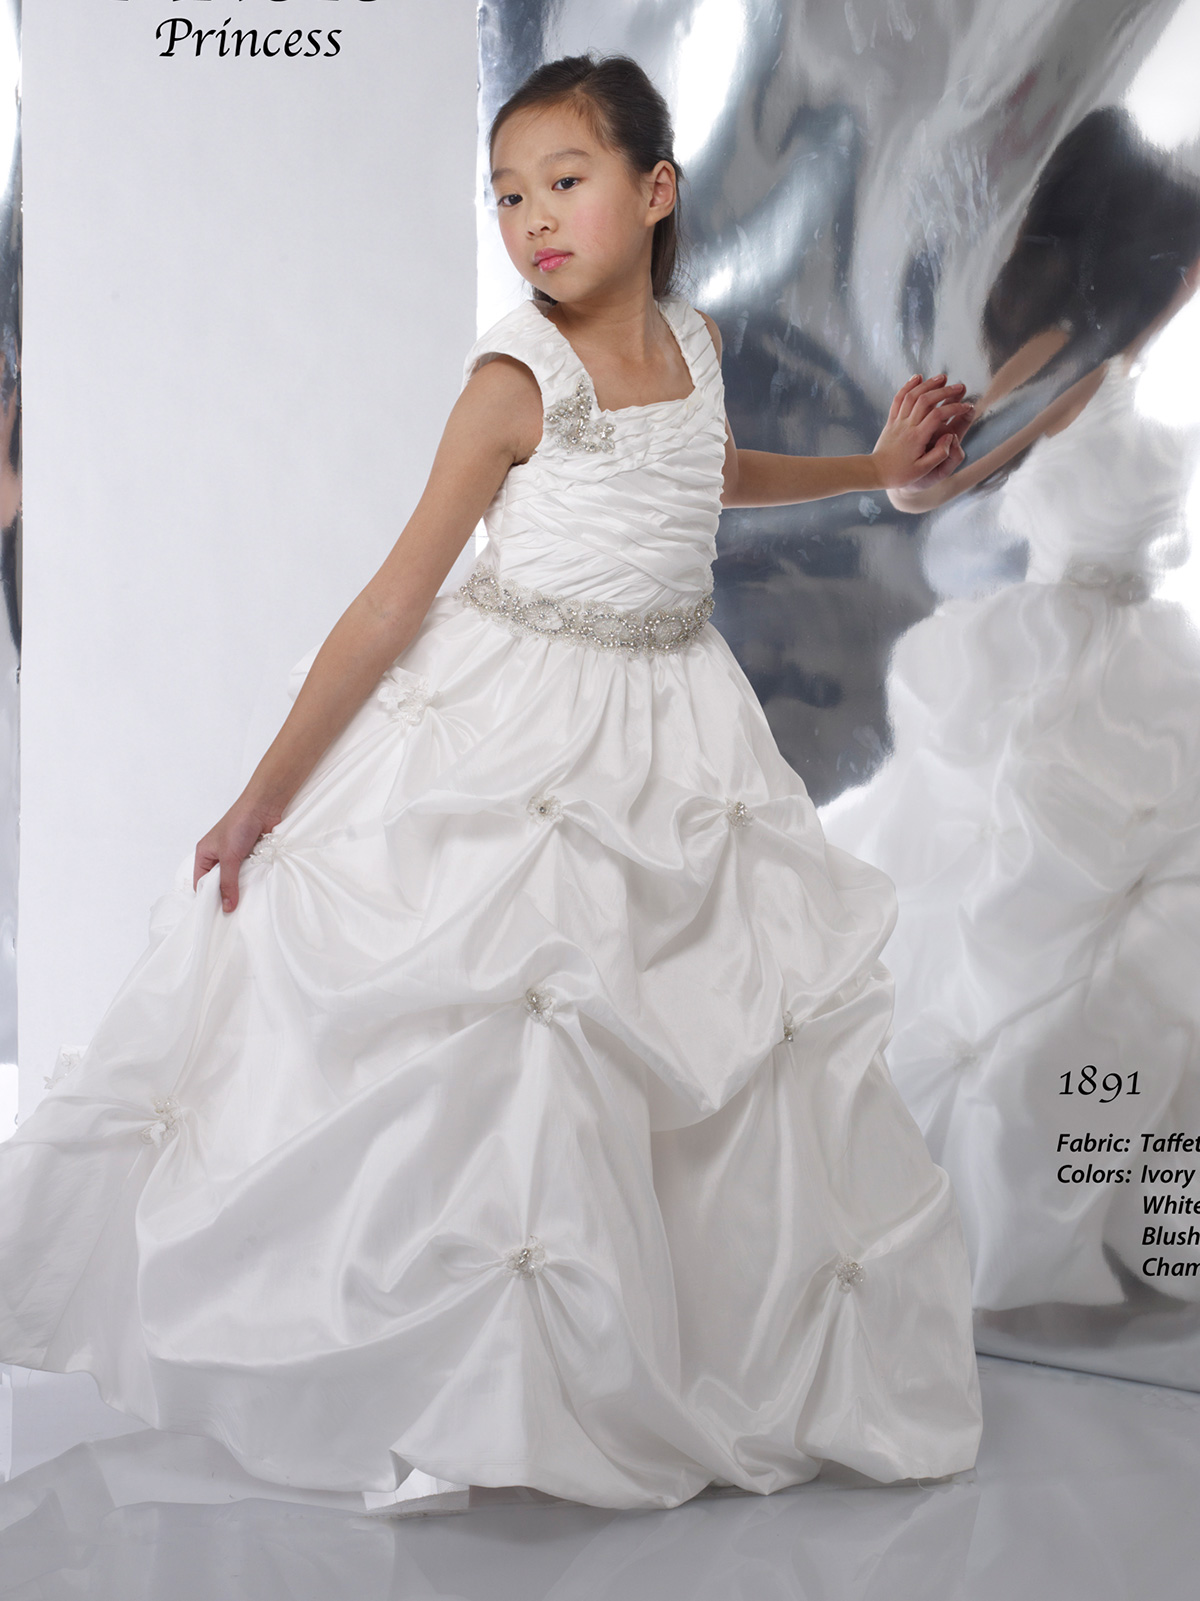 e75772fe286 Angelic Pick Ups Taffeta Skirt Macis Design Pageant Ball Gown 1891